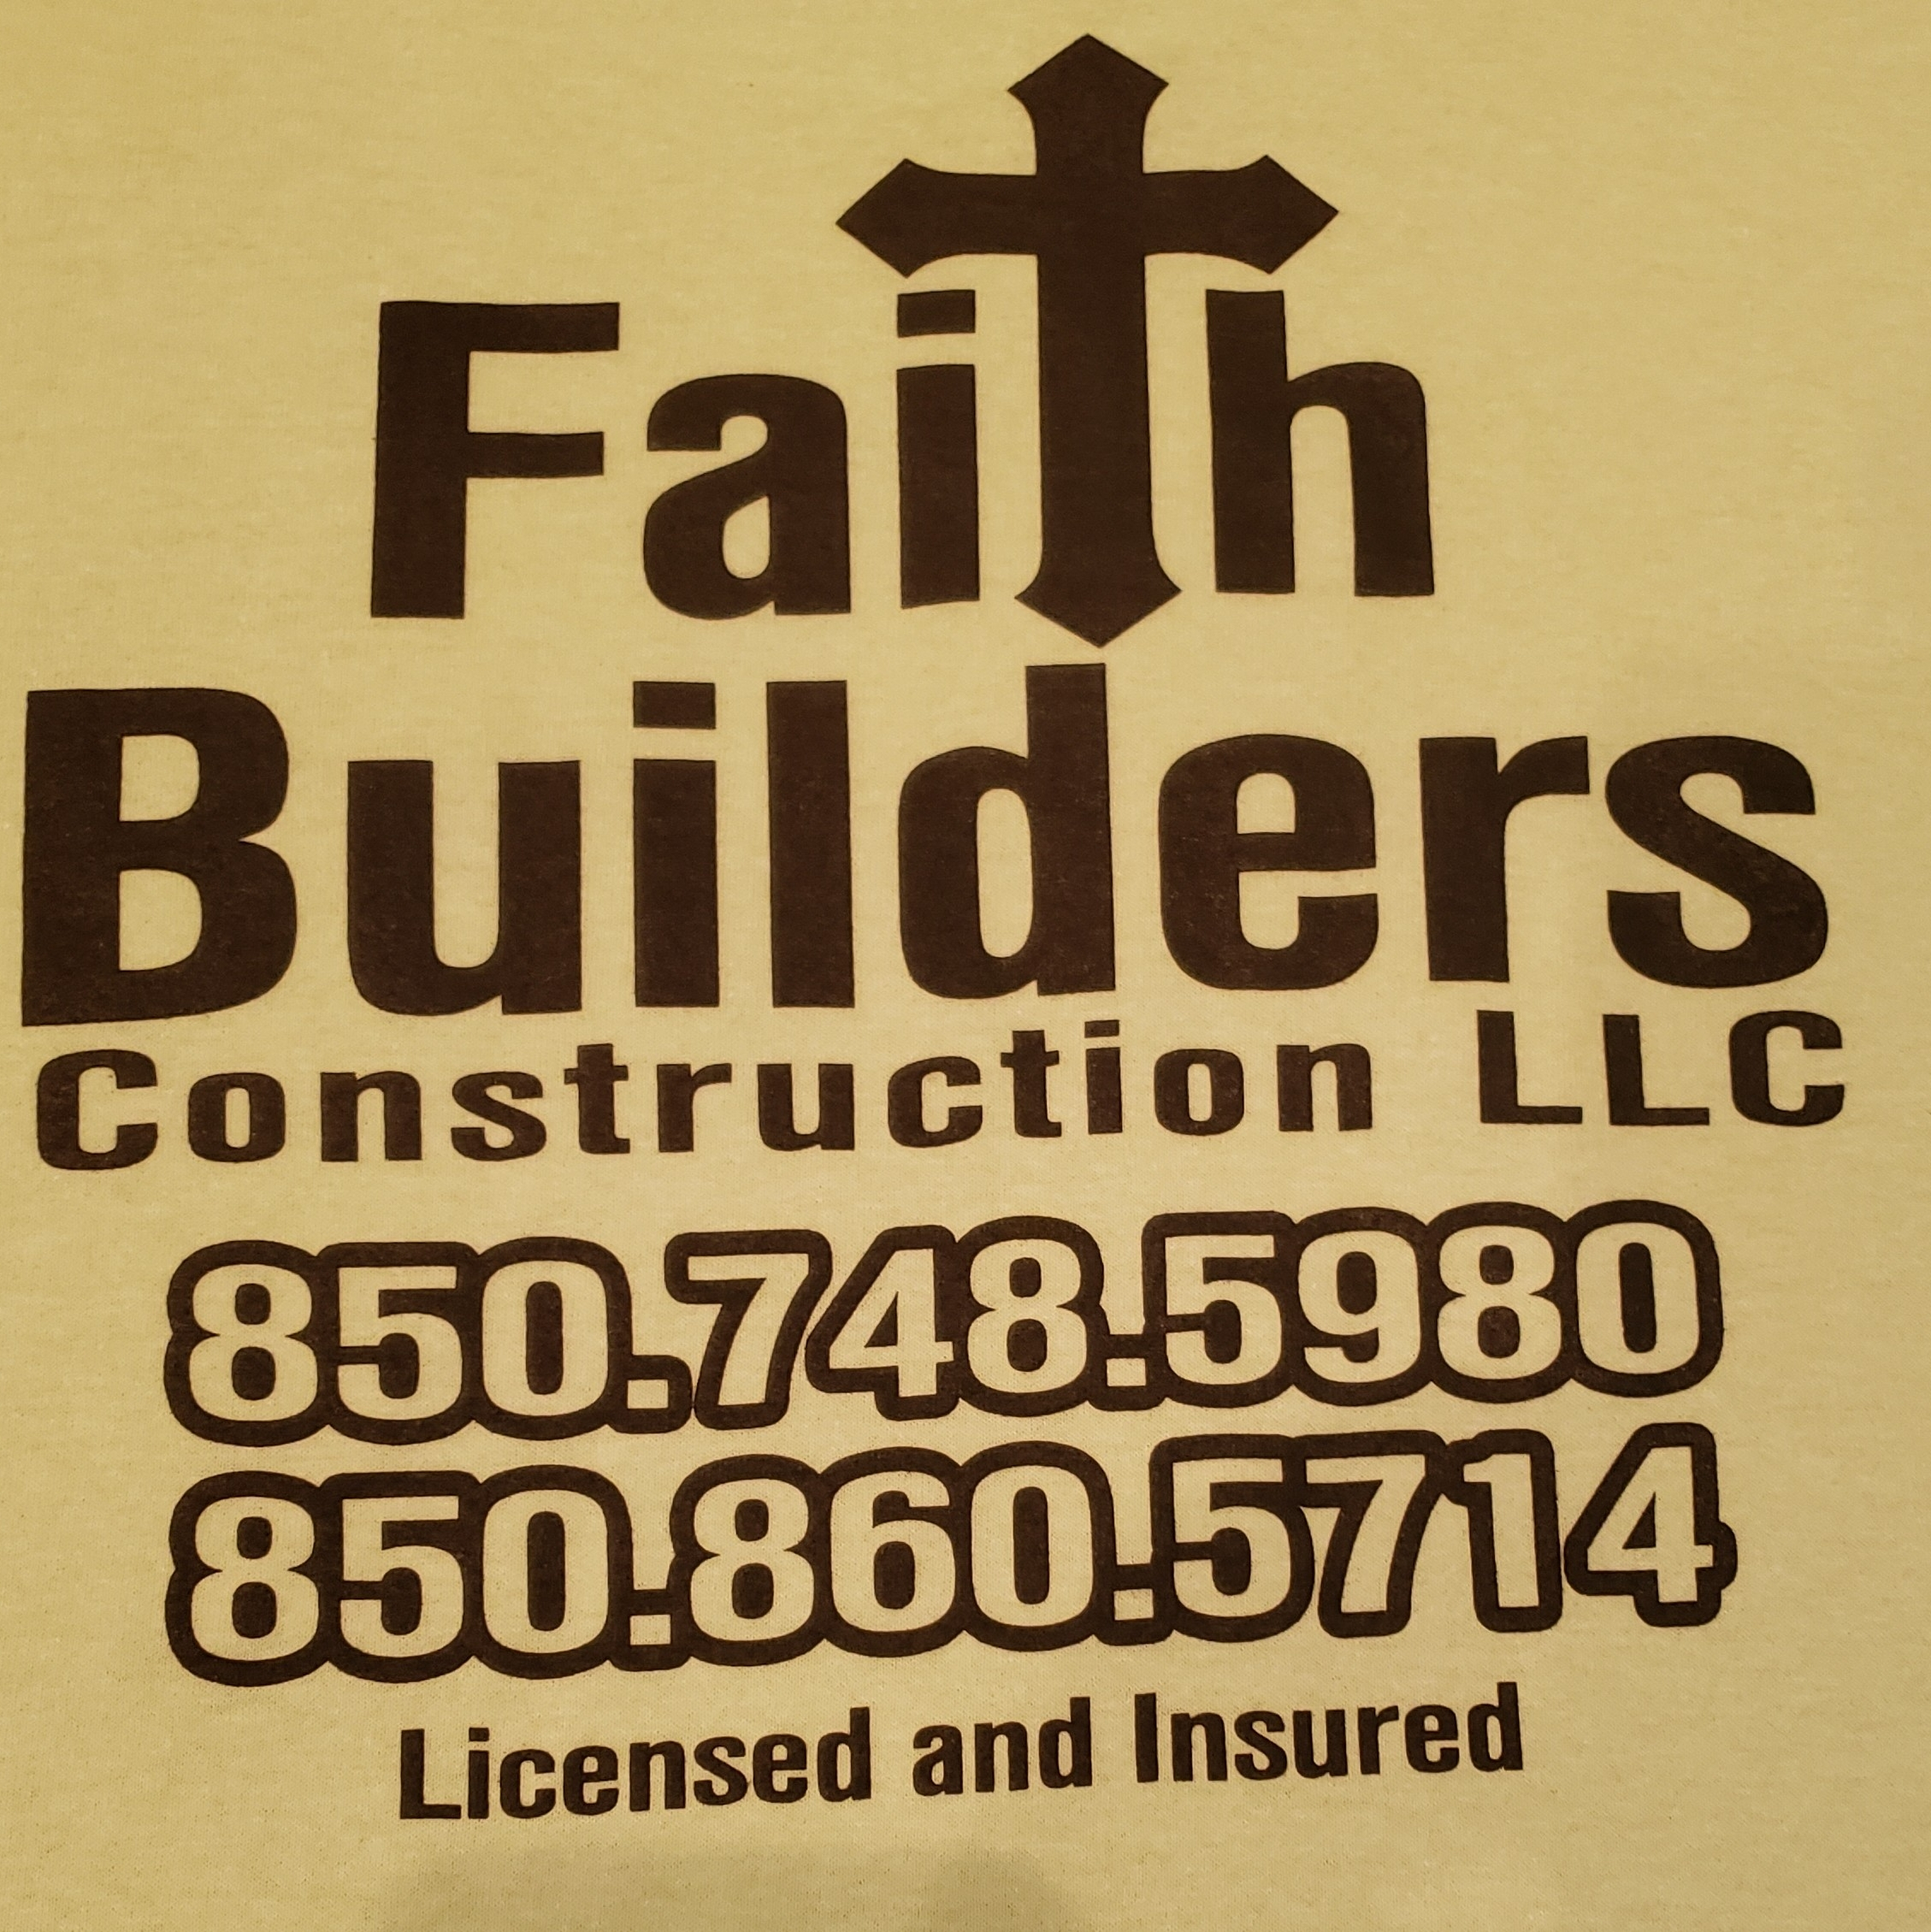 Faith Builders Construction LLC